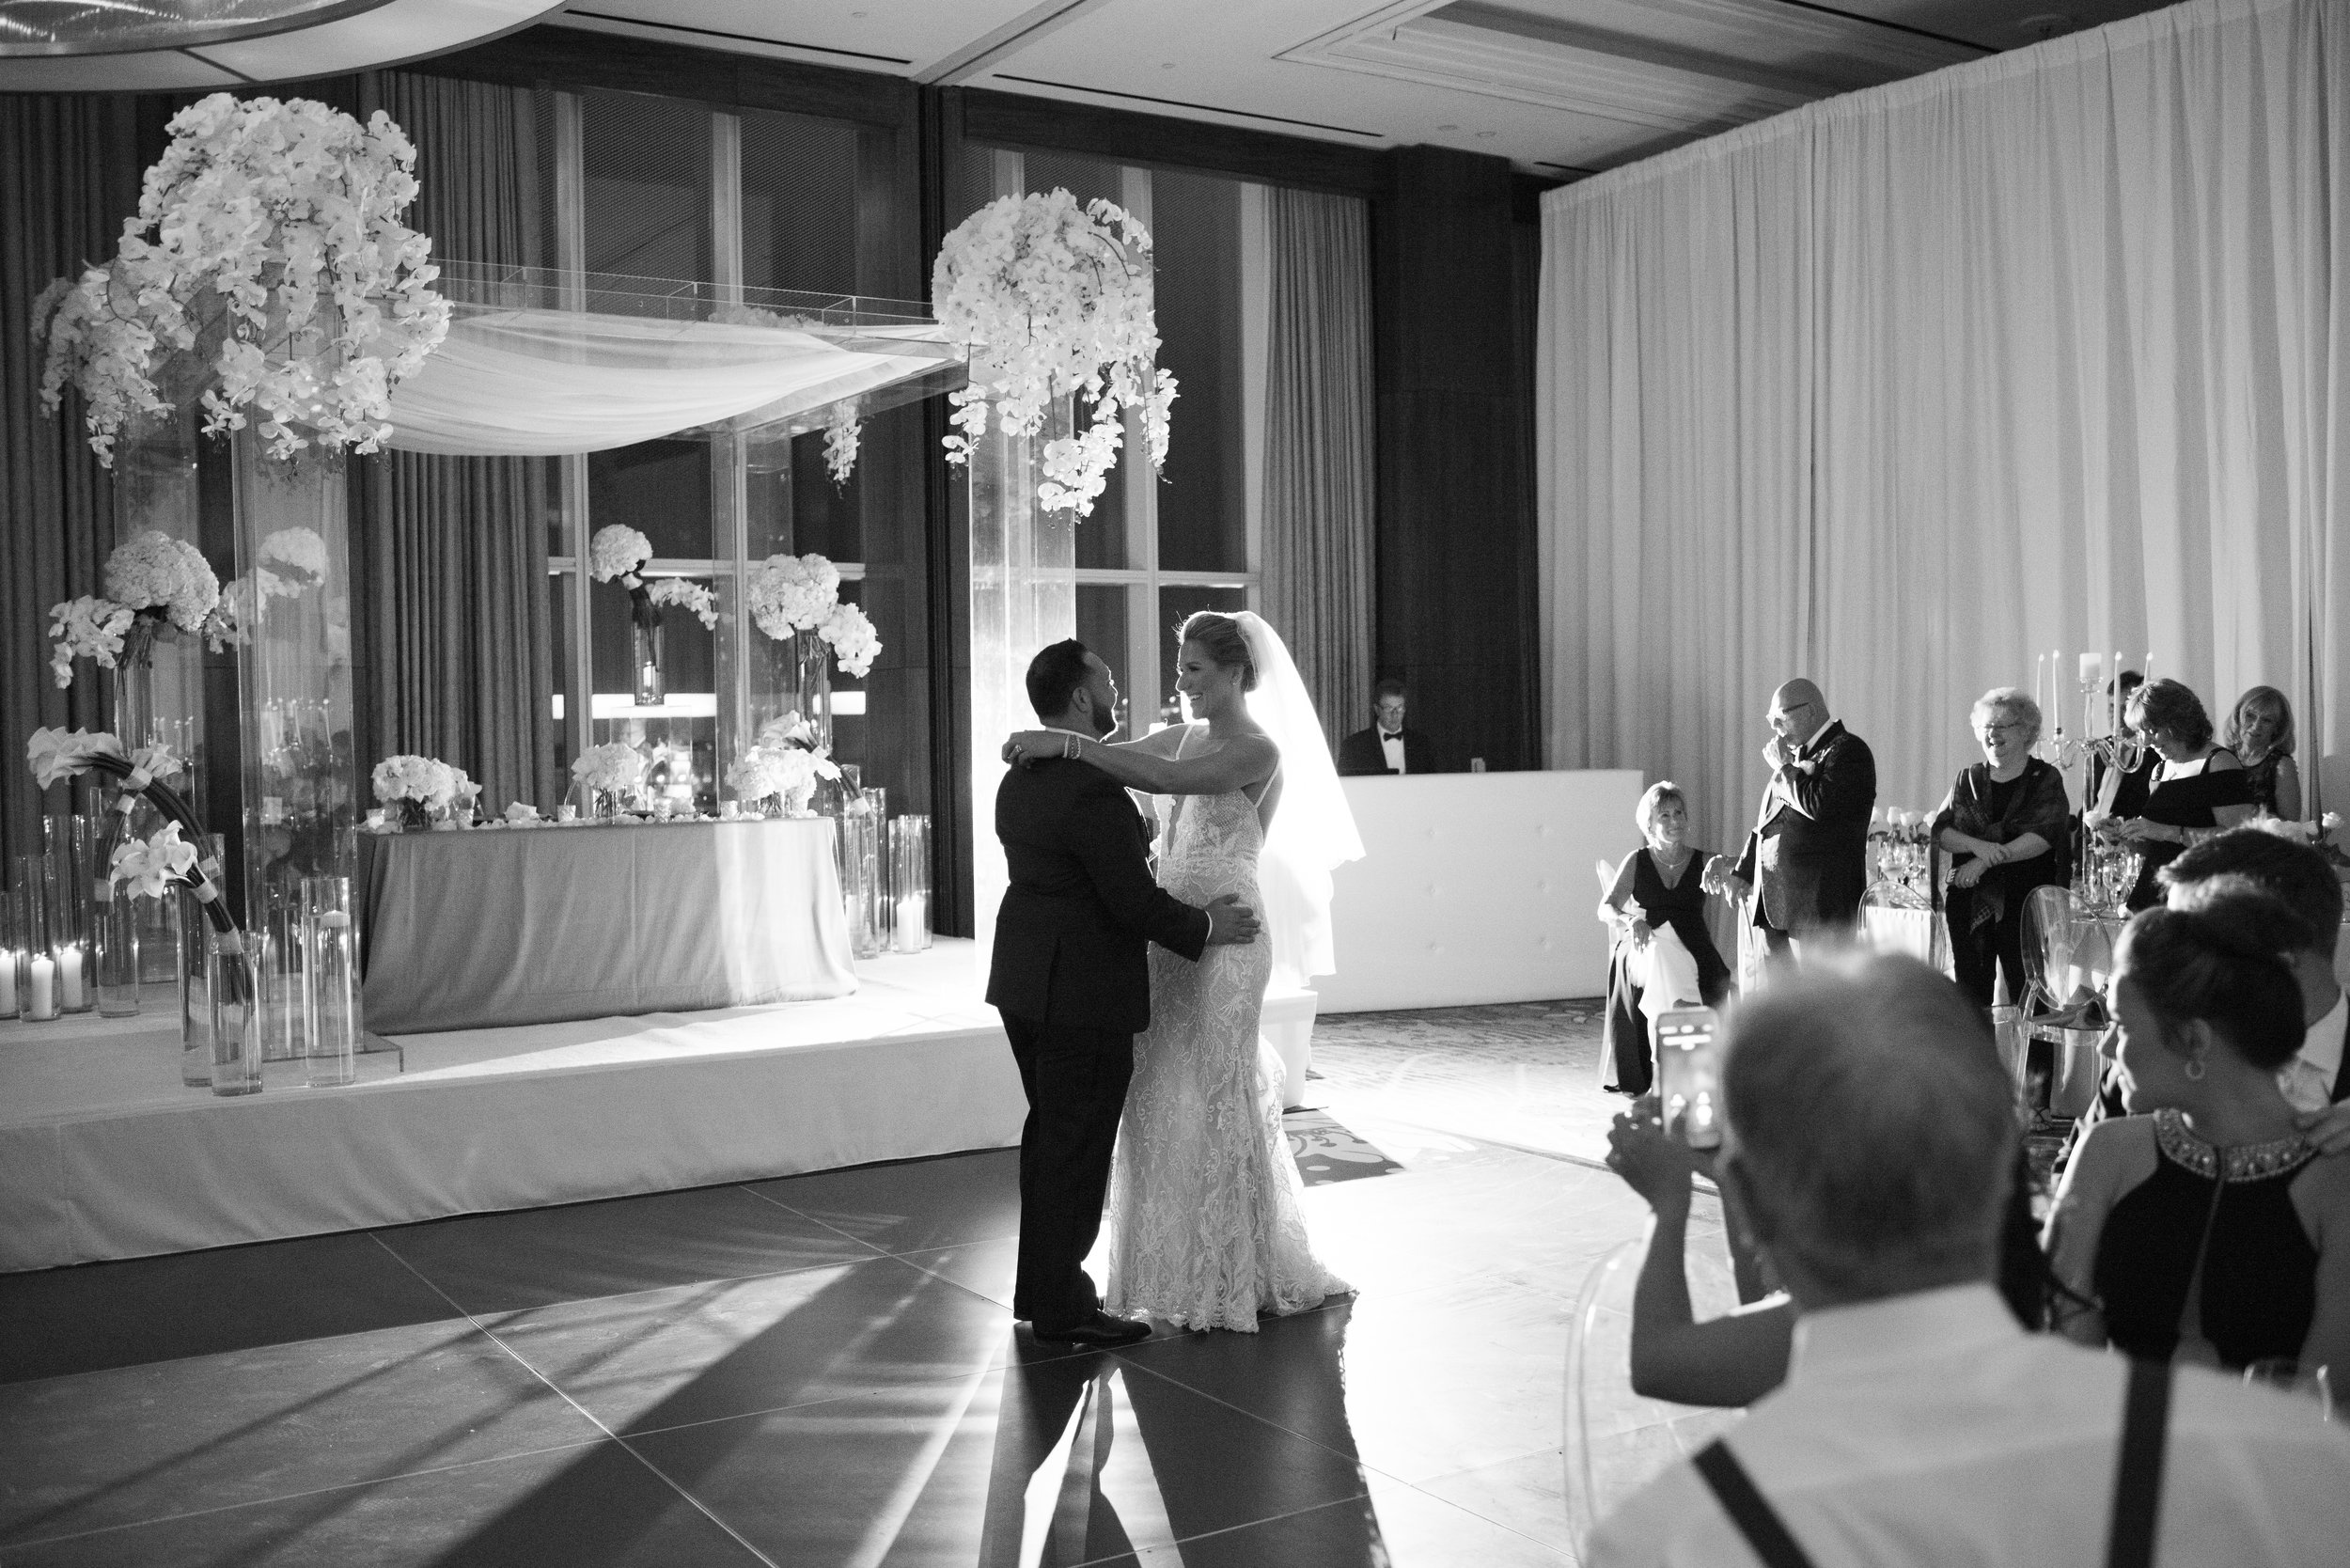 Bride and groom share their first dance on the black dance floor with white applique. WEDDING PLANNING & EVENT DESIGN • Andrea Eppolito Events ,PHOTOGRAPHY • AltF Photography ,FLORAL AND DECOR DESIGN & PRODUCTION • Destinations by Design , CATERING • Mandarin Oriental Las Vegas , COCKTAILS •  The Grand Bevy , WEDDING GOWN •  Galia Lahav ,SHOES •  Jimmy Choo , ACRYLIC MENUS & SEATING CHART•  She Paperie